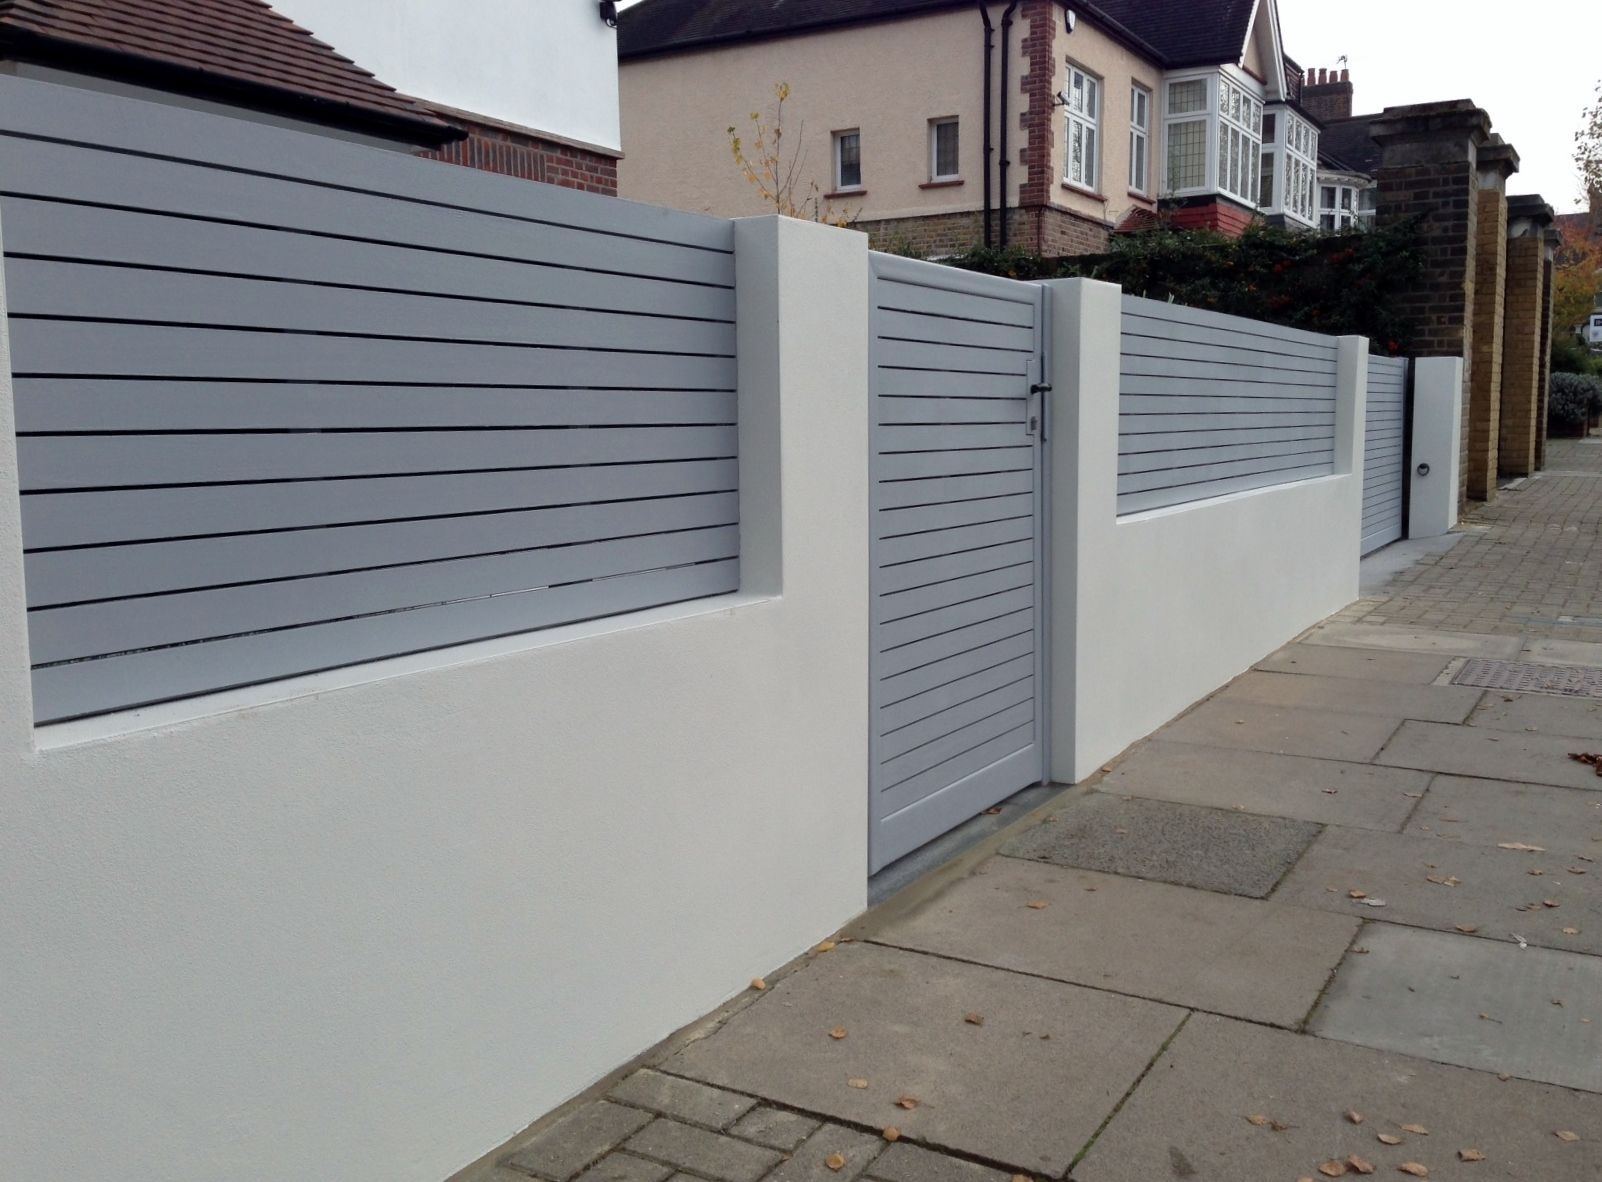 Simple Boundary Wall Design : Front boundary wall screen automated electronic gate